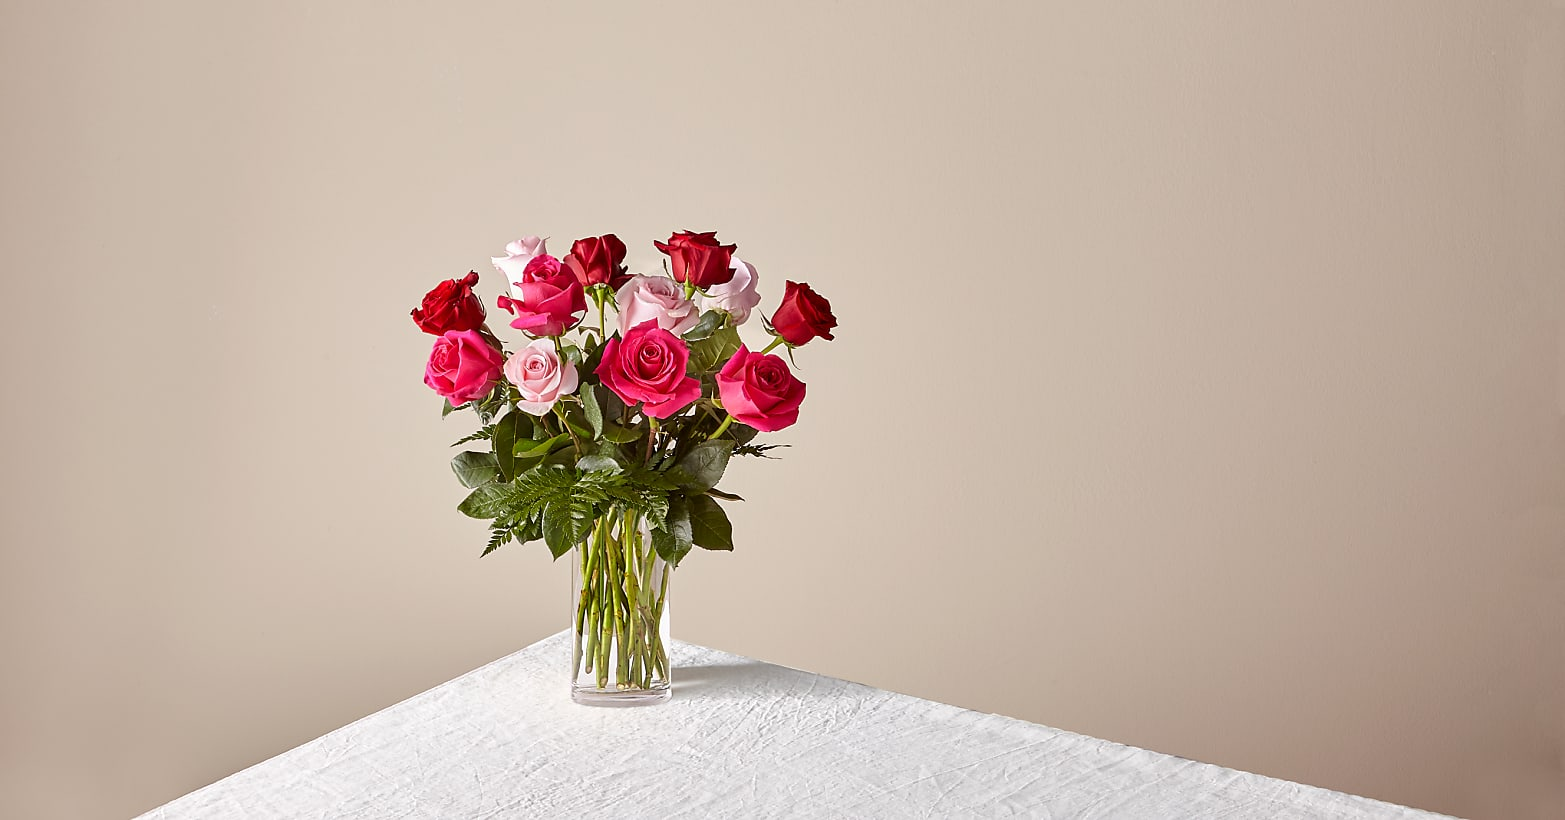 Rose Colored Love Bouquet - Image 6 Of 7